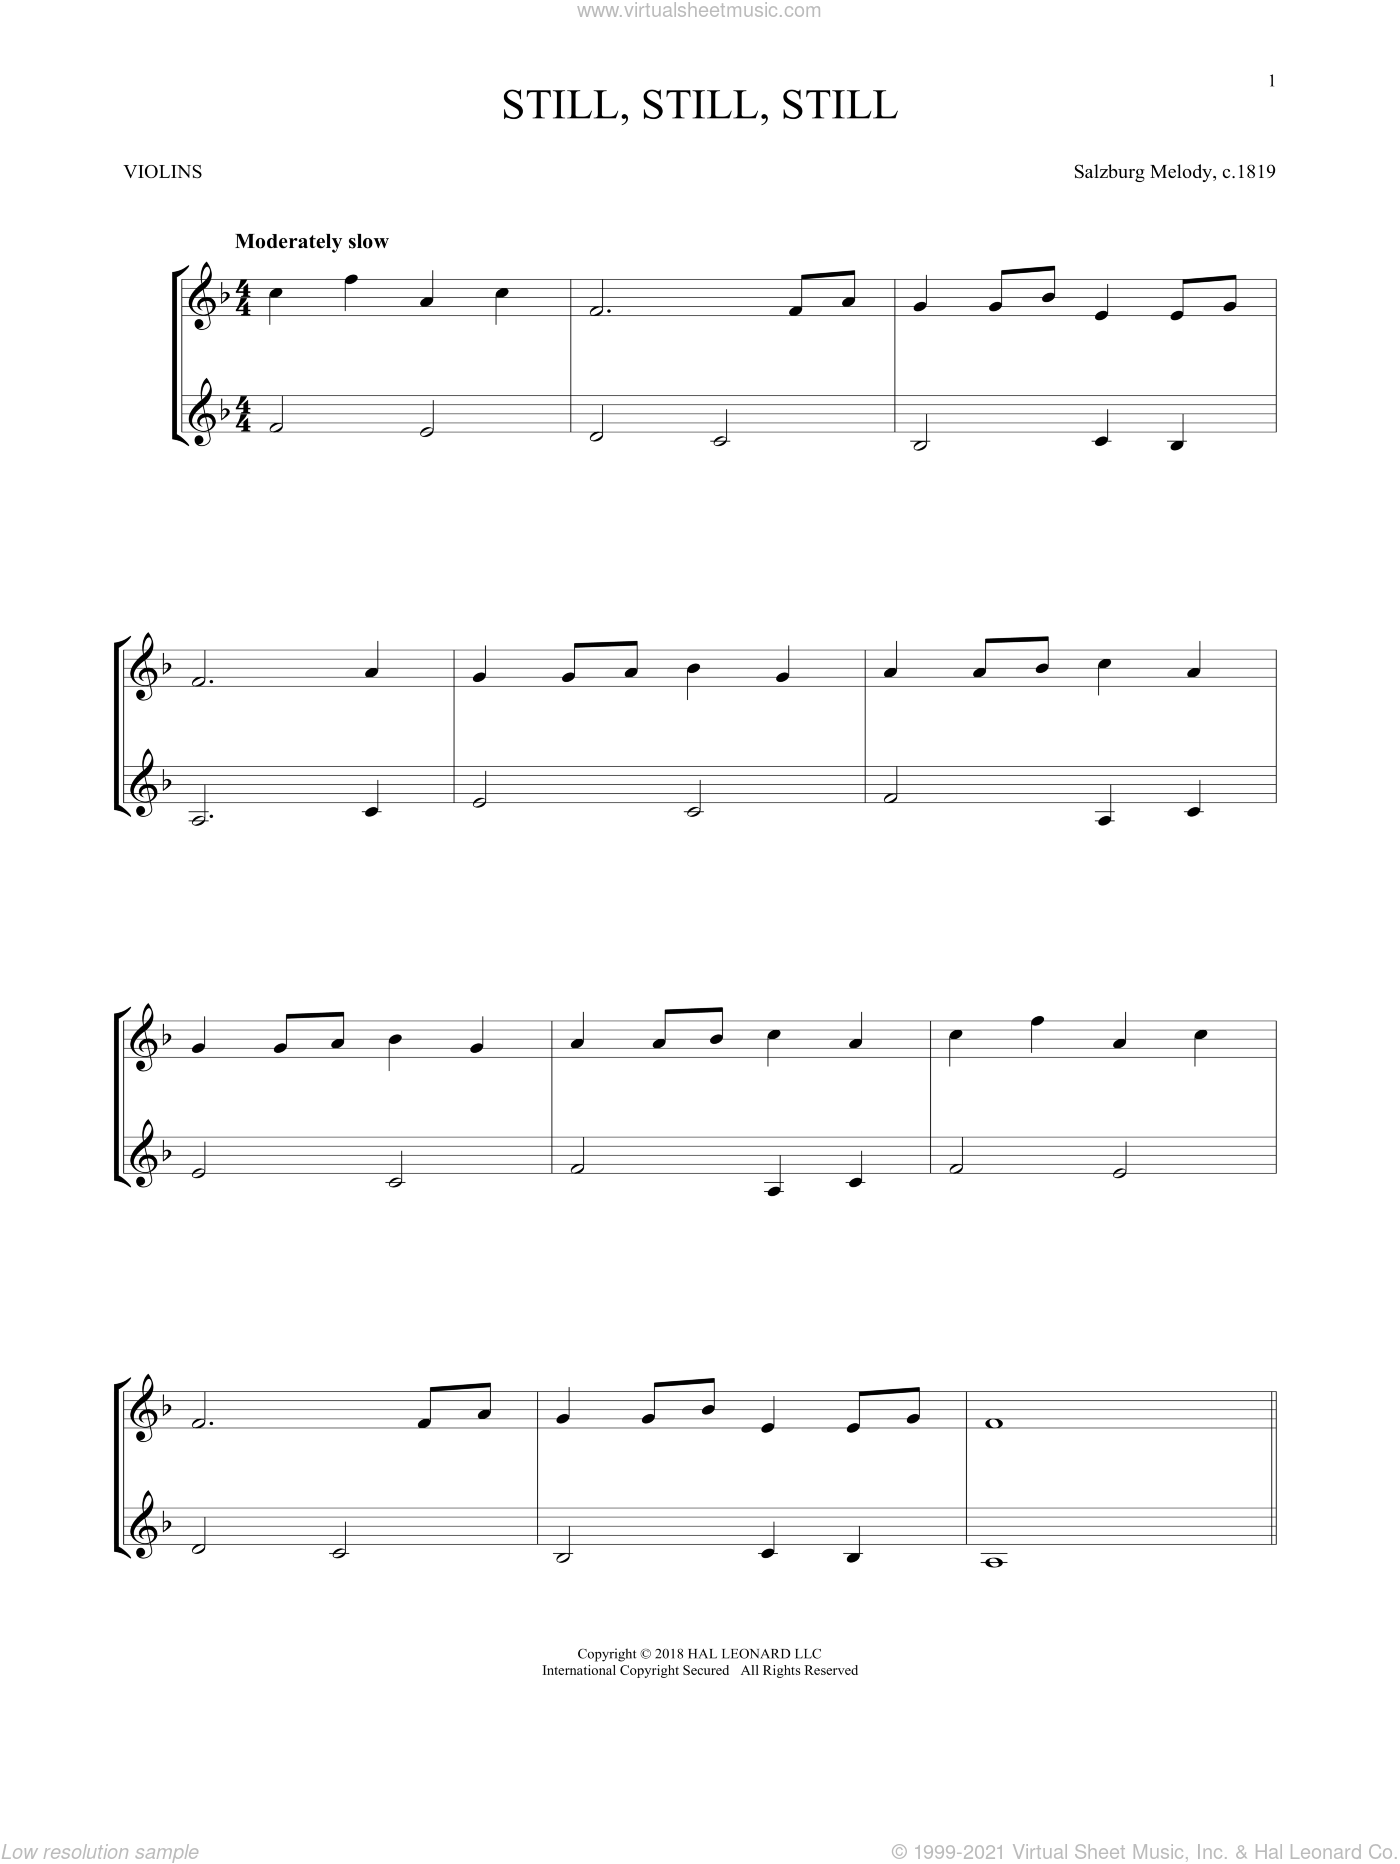 Still, Still, Still sheet music for two violins (duets, violin duets) by Salzburg Melody c.1819, Mark Phillips and Miscellaneous, intermediate skill level